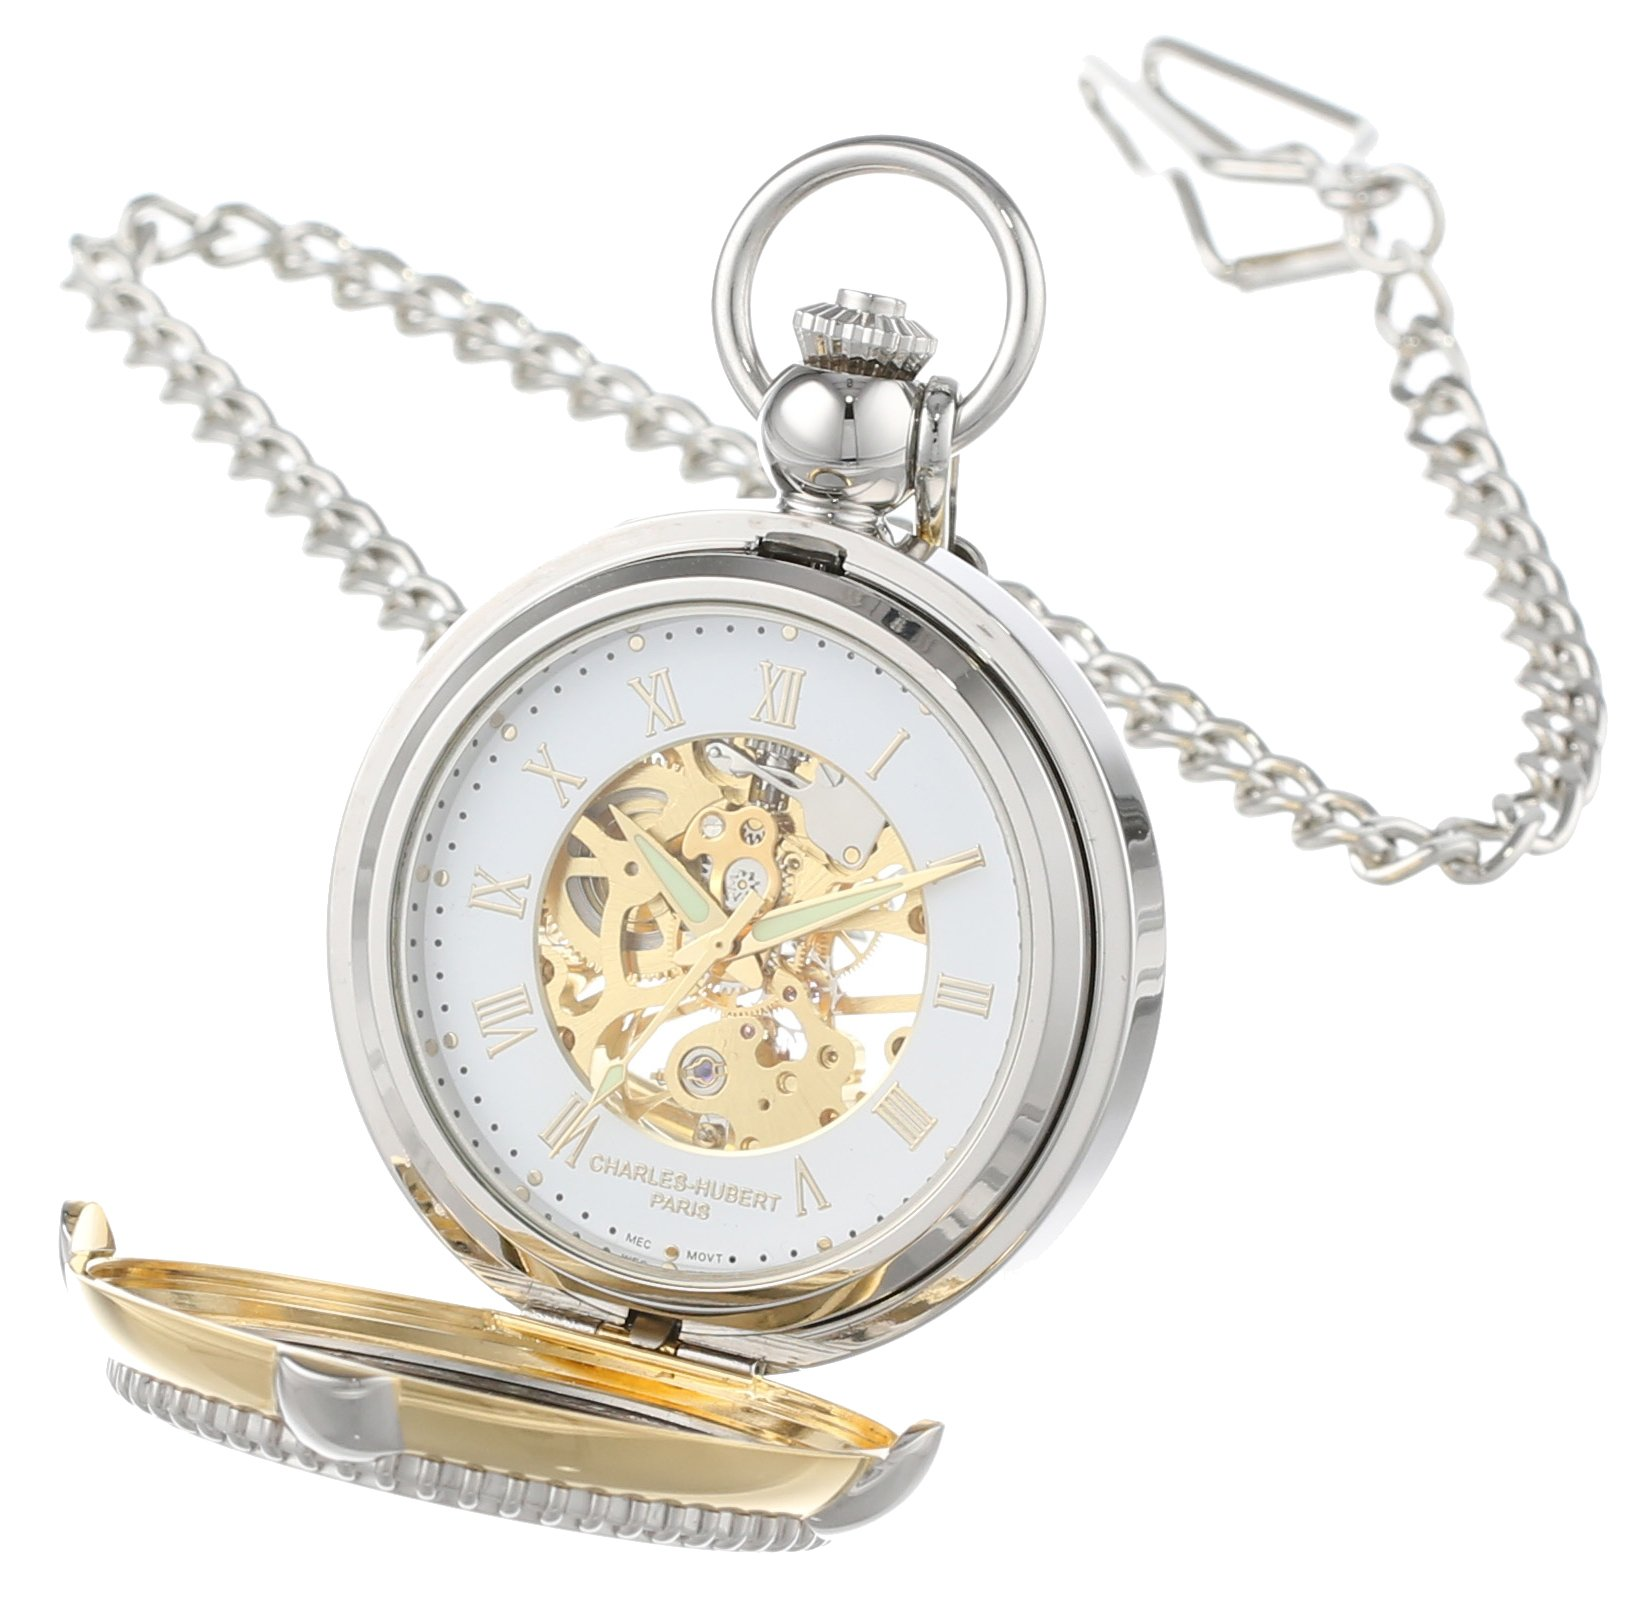 CDM product Charles Hubert 3846 Two-Tone Mechanical Picture Frame Pocket Watch big image